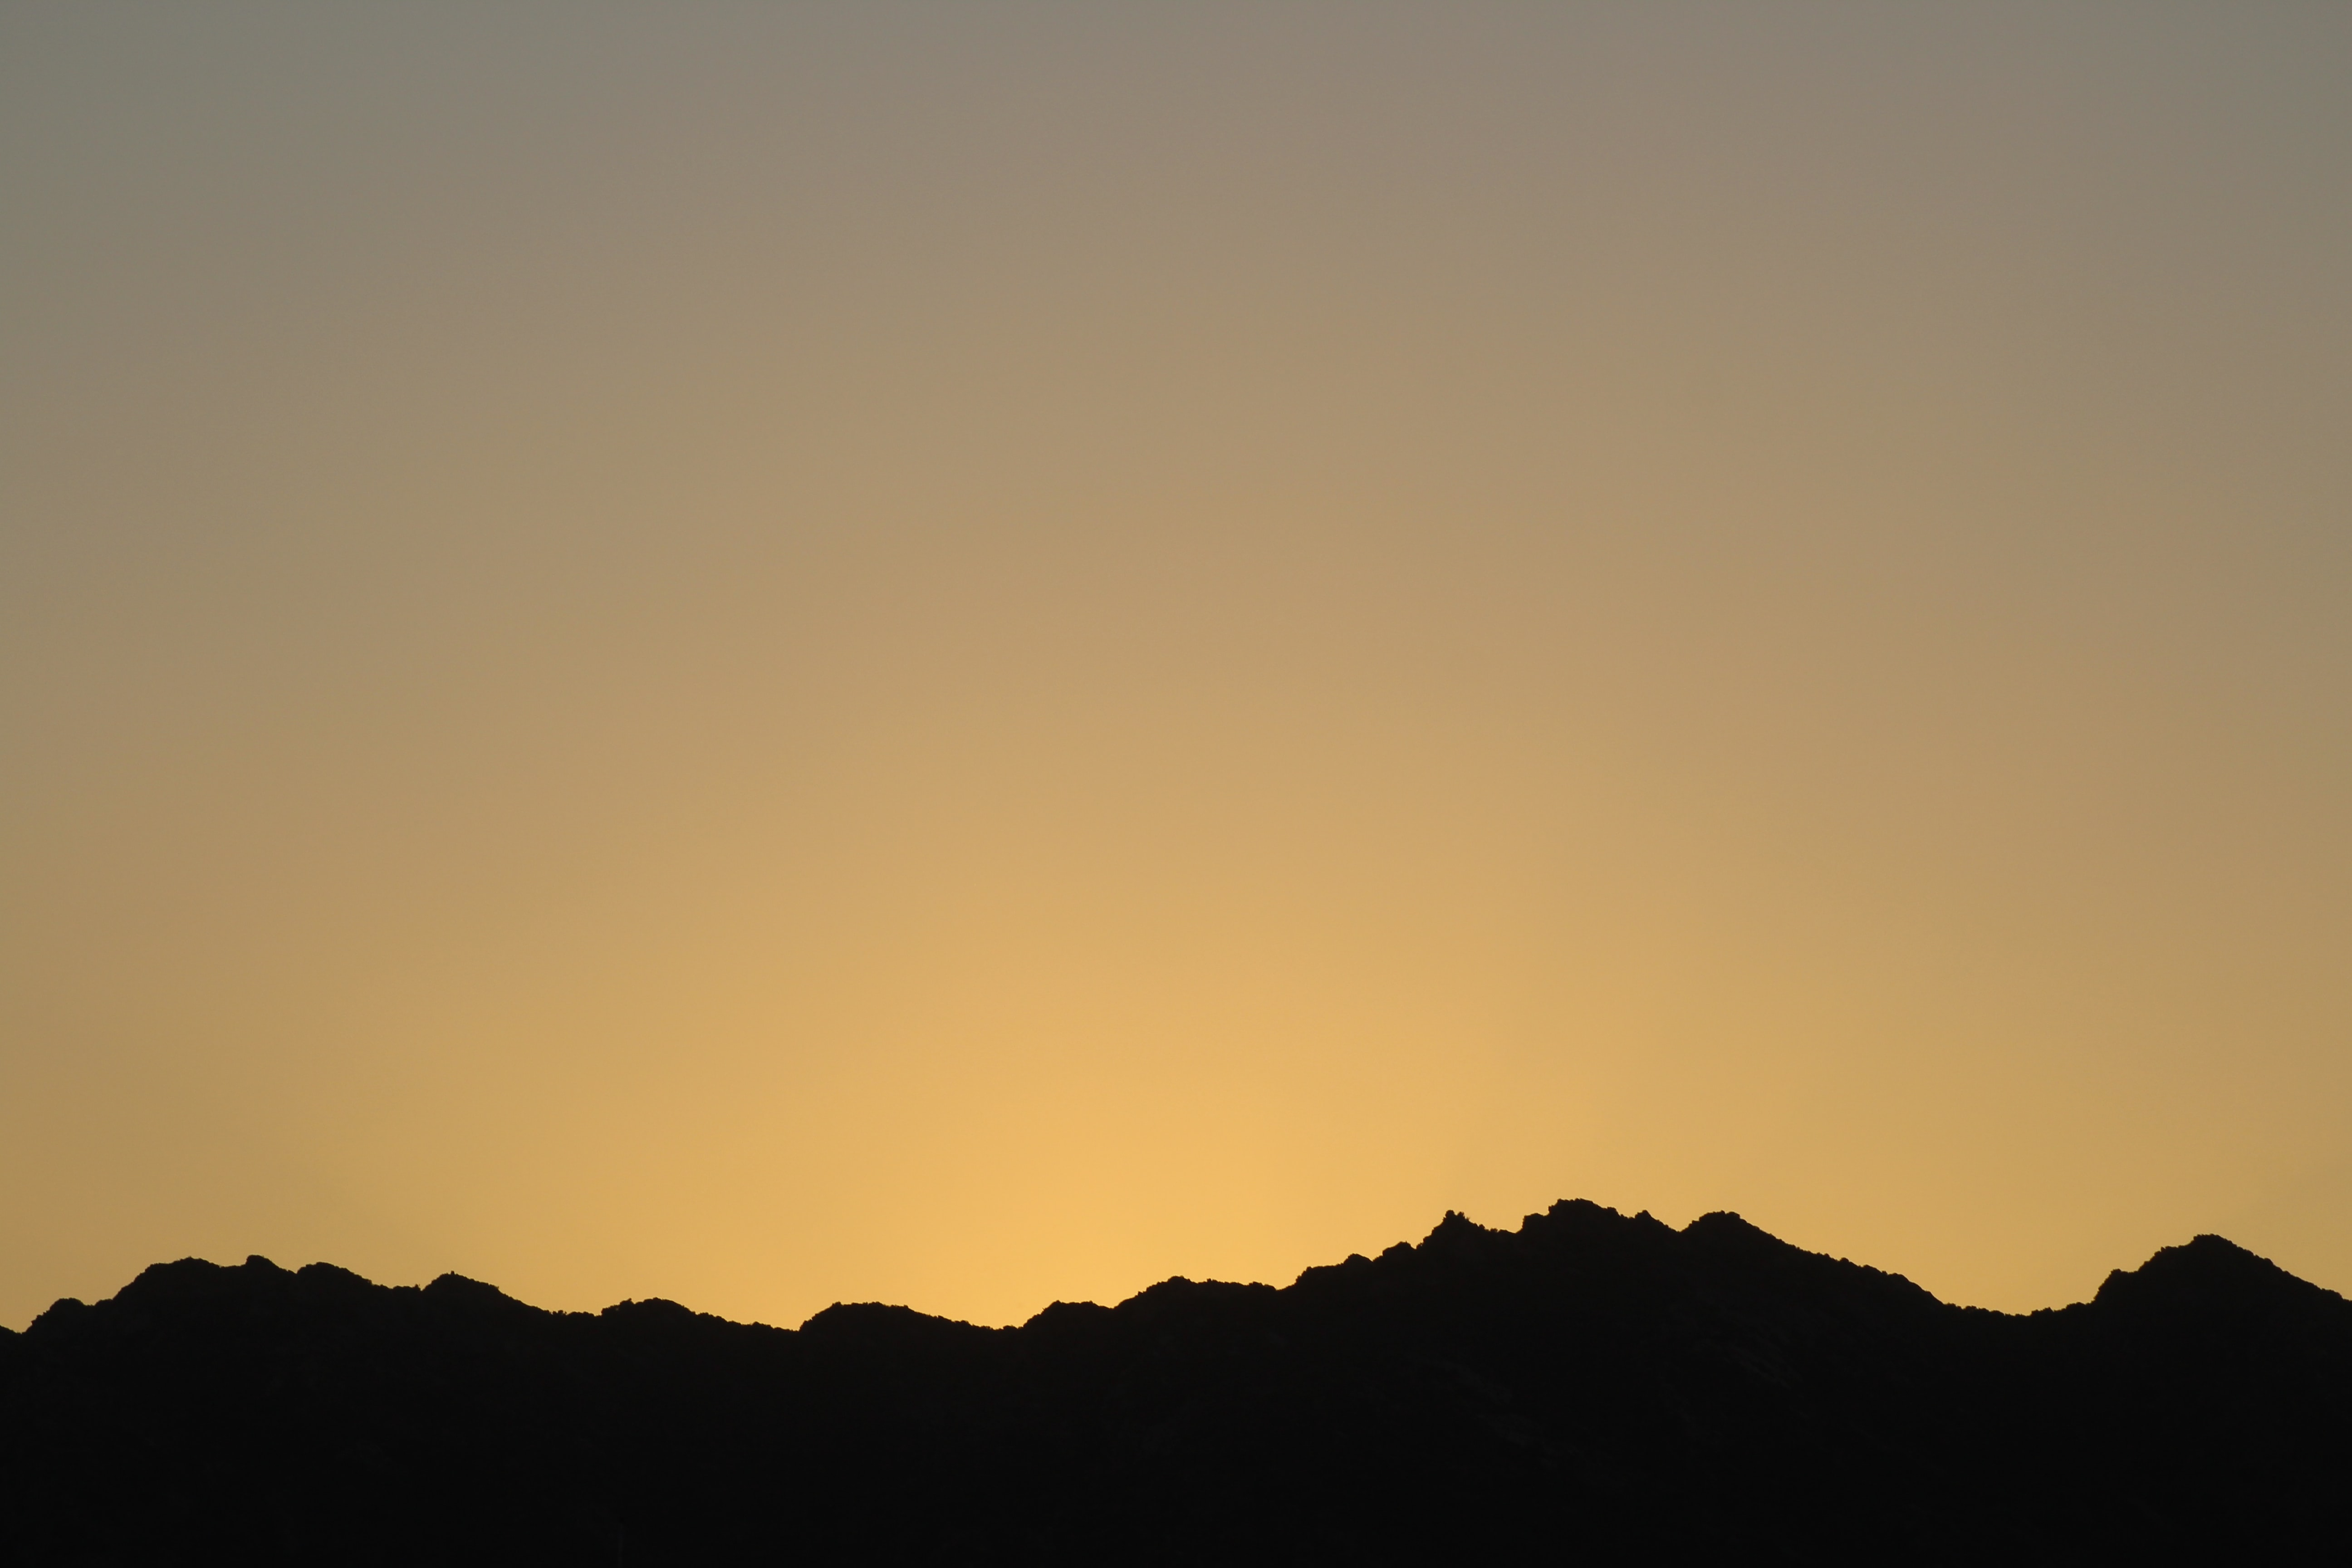 silhouette of mountains with sunrise background